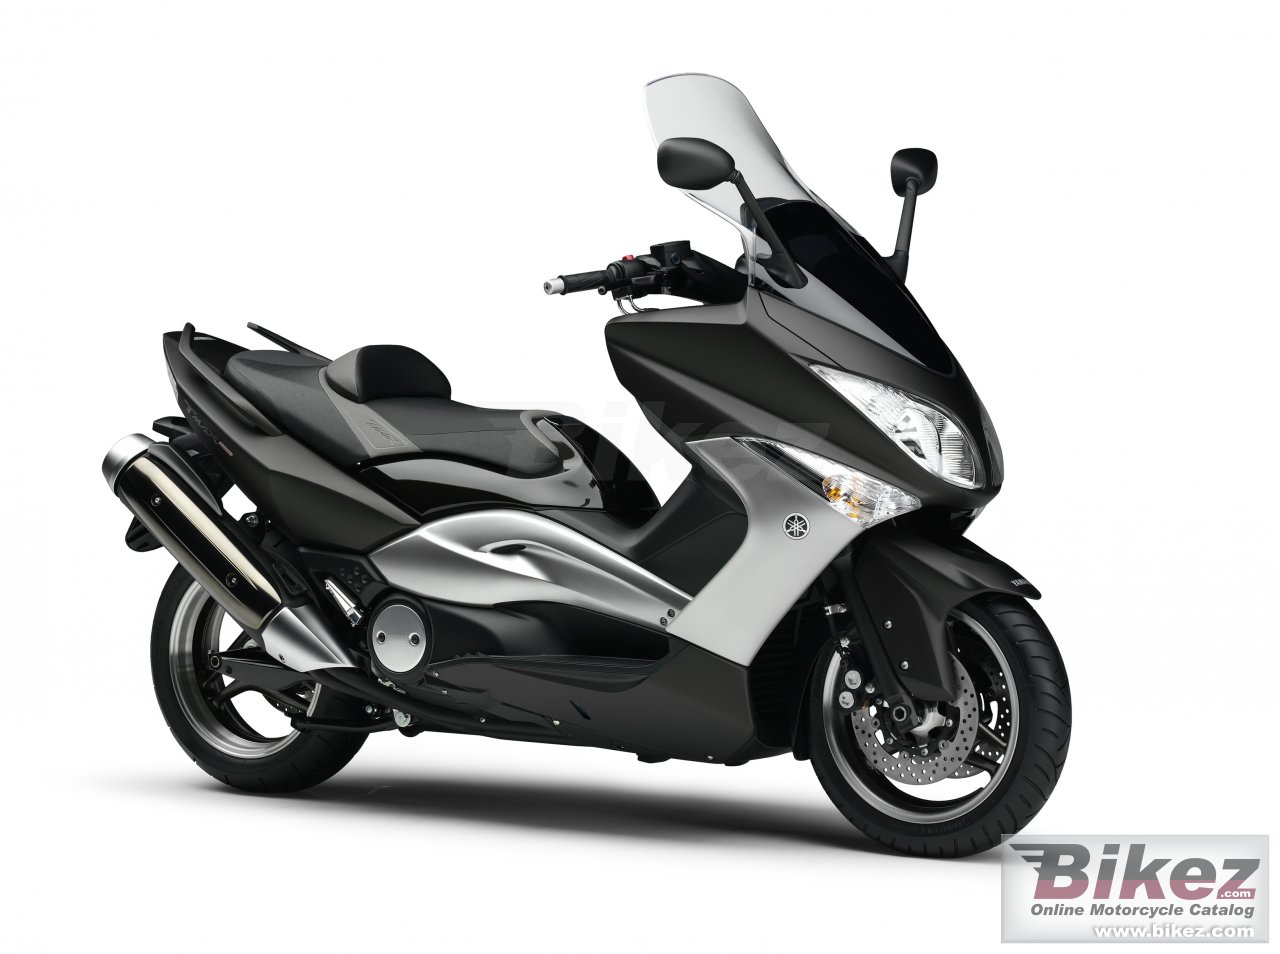 Big Yamaha tmax tech max picture and wallpaper from Bikez.com